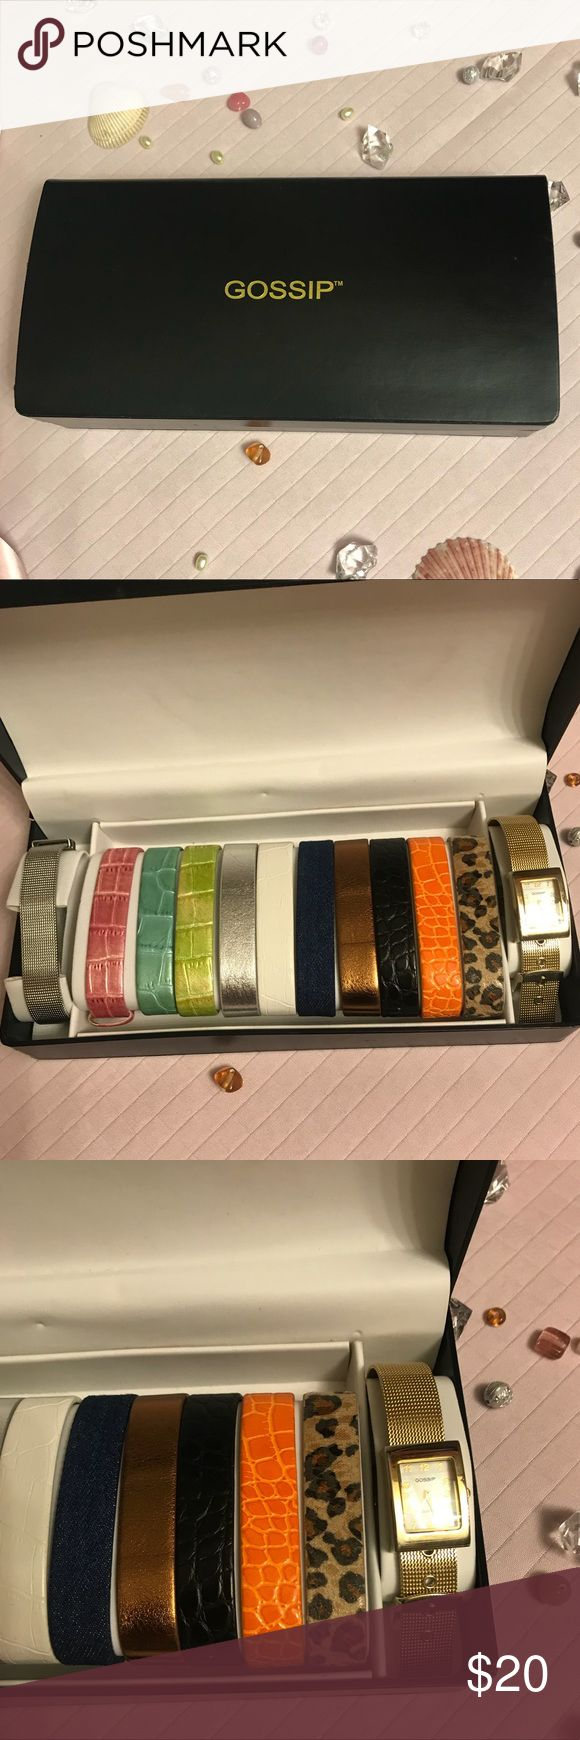 Gossip watch set with 10 different bands New gossip watch set with 10 different brands in great condition never used. Has a band to match every mood and every color of your wardrobe.  Prices are always negotiable and bundling is always appreciated and discounted   #gossip #gossipwatch #watchset Gossip Accessories Watches